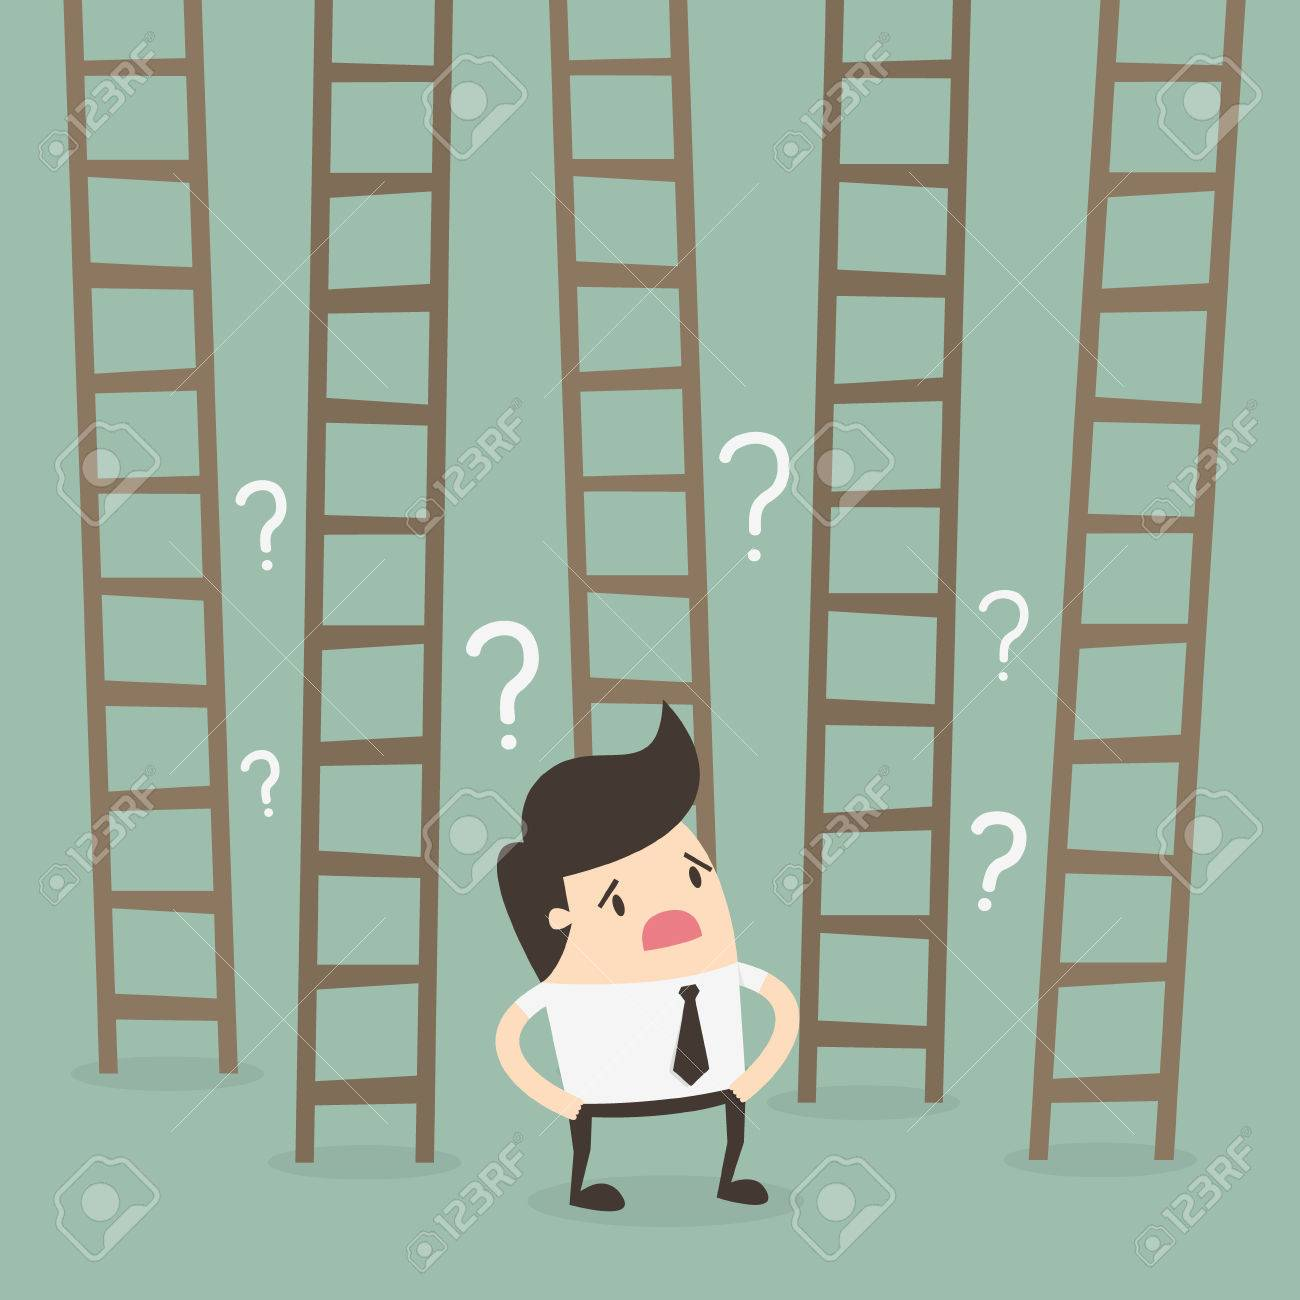 Ladder to success. Business choices concept. - 53139112